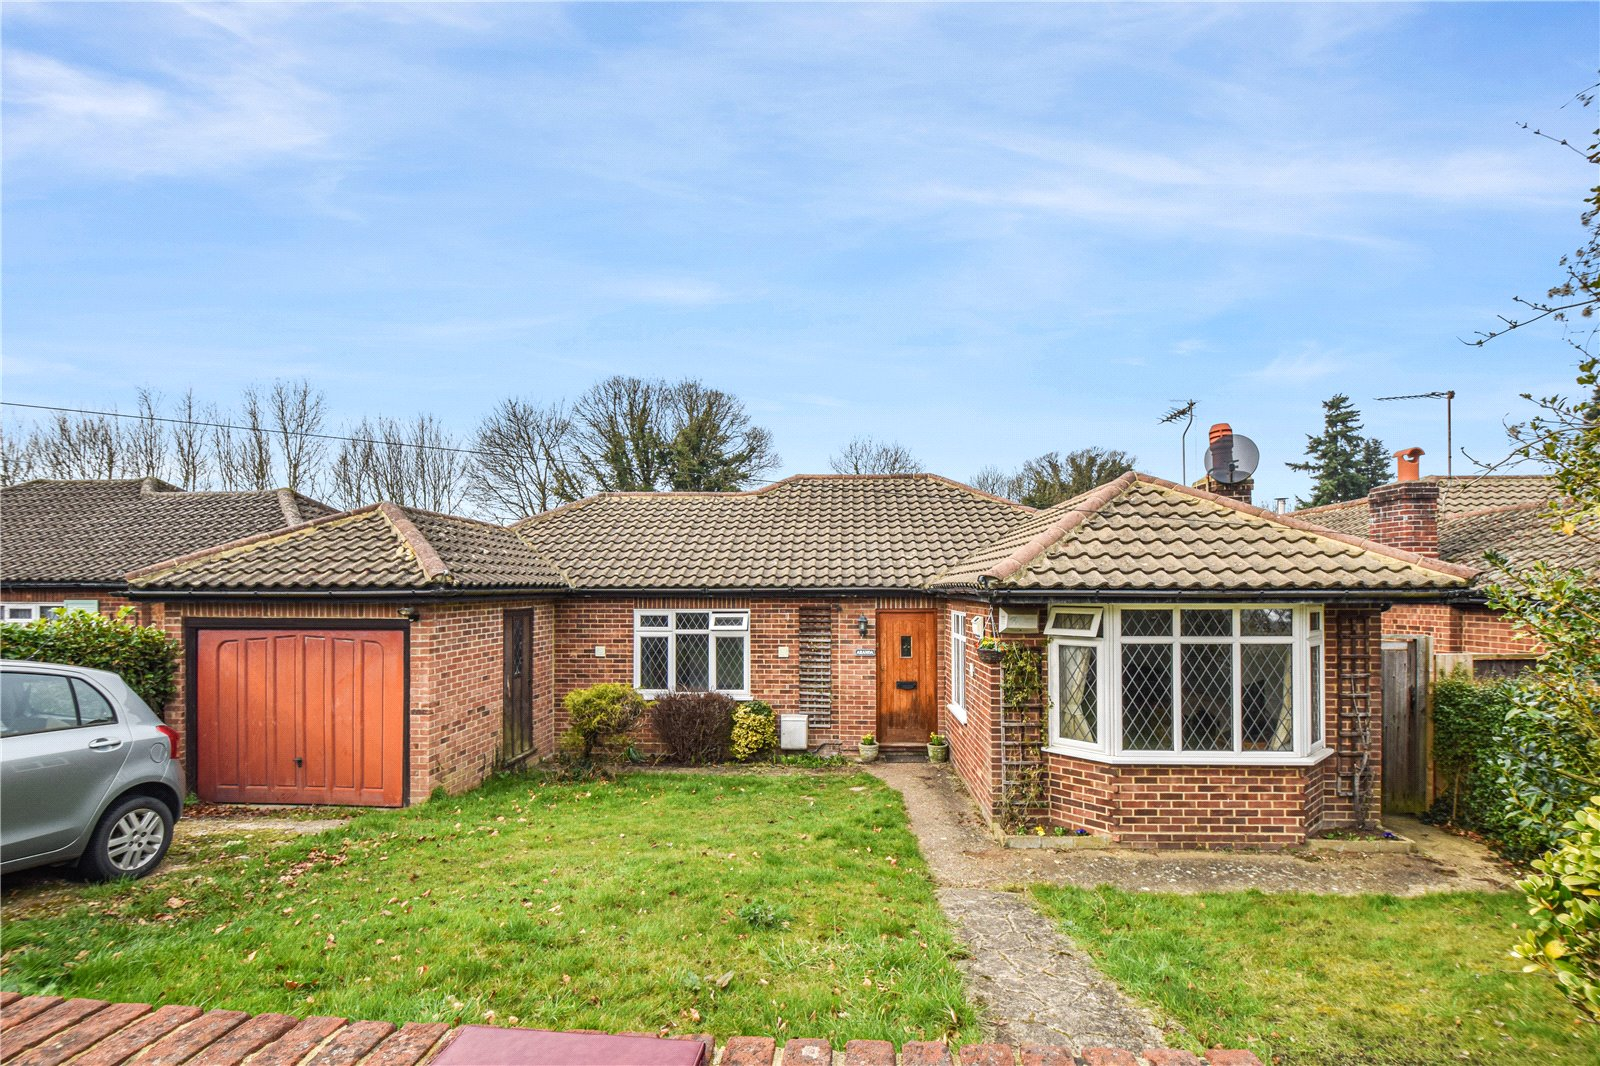 Station Road, Eynsford, Kent, DA4